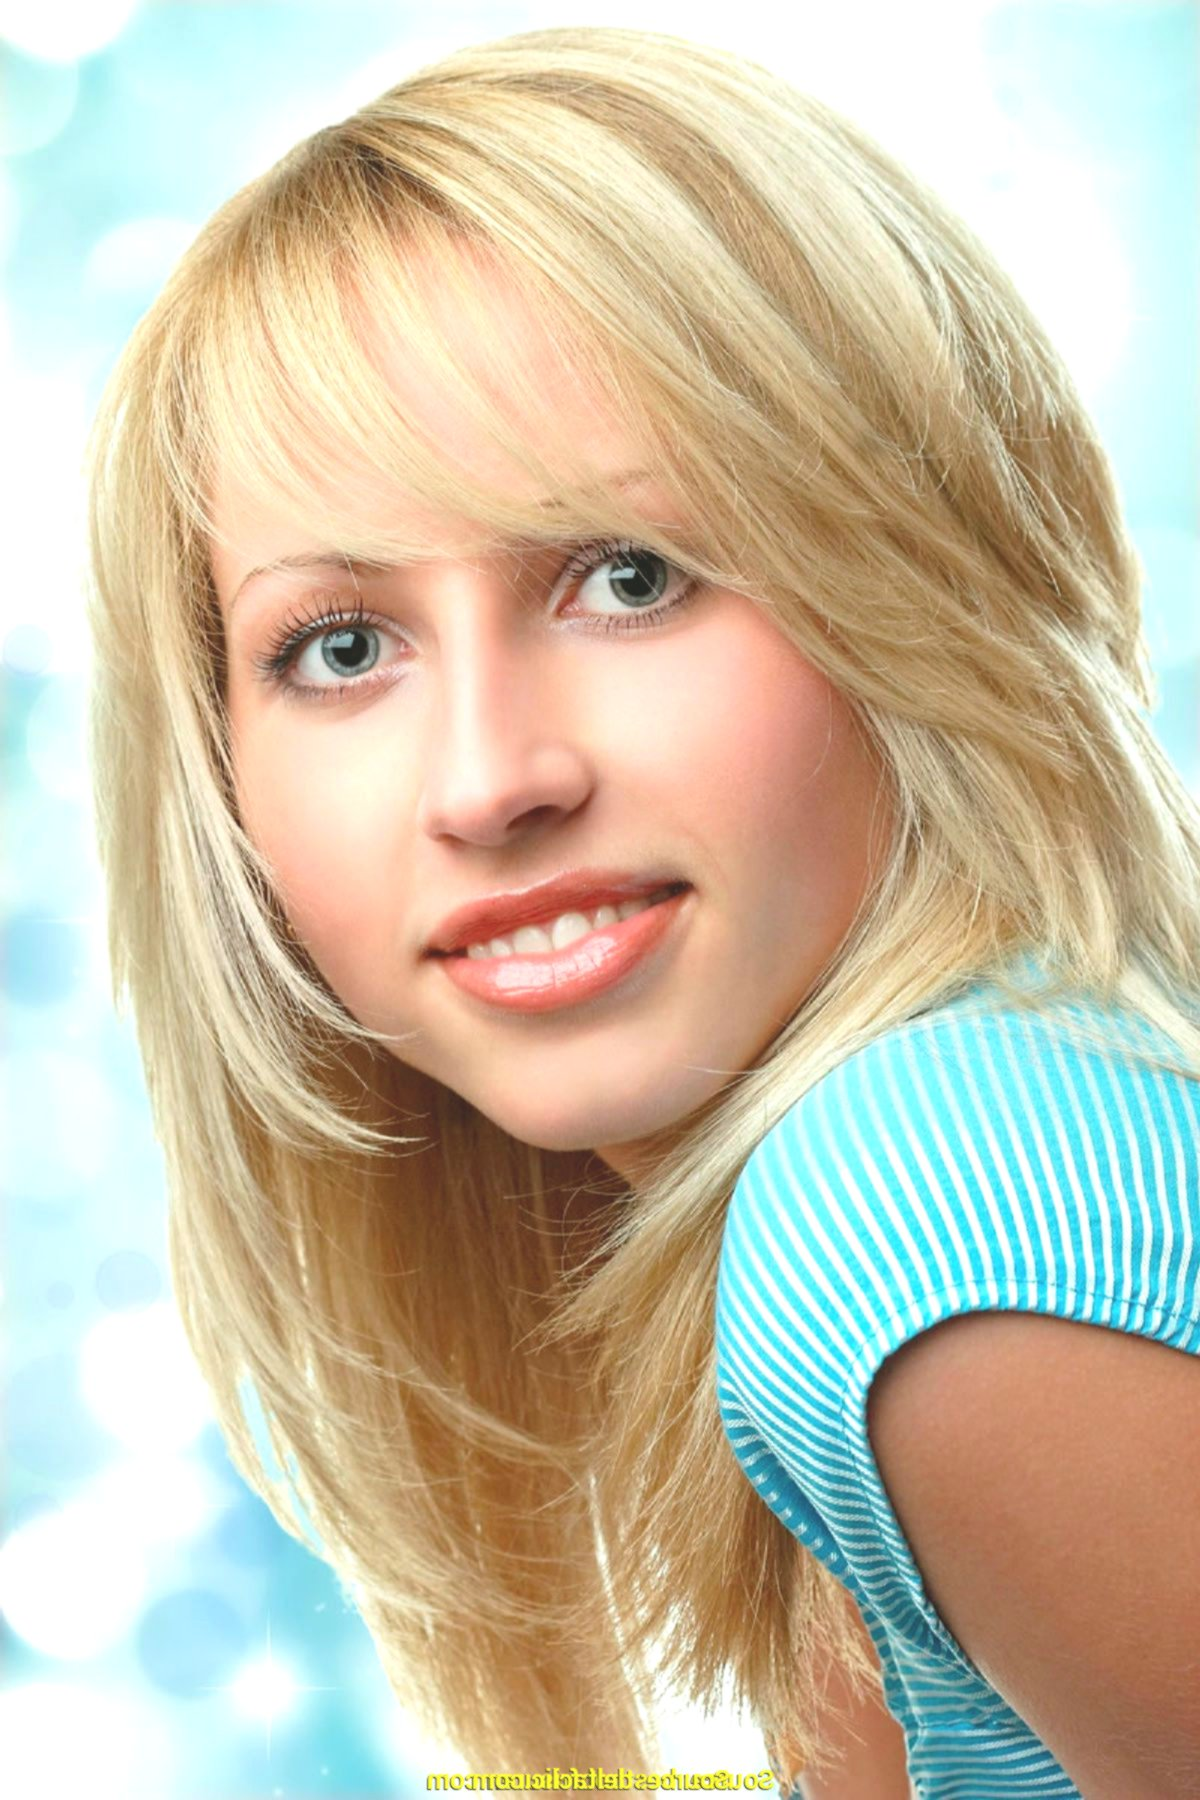 Excellent ladies haircut plan-Awesome ladies haircut models